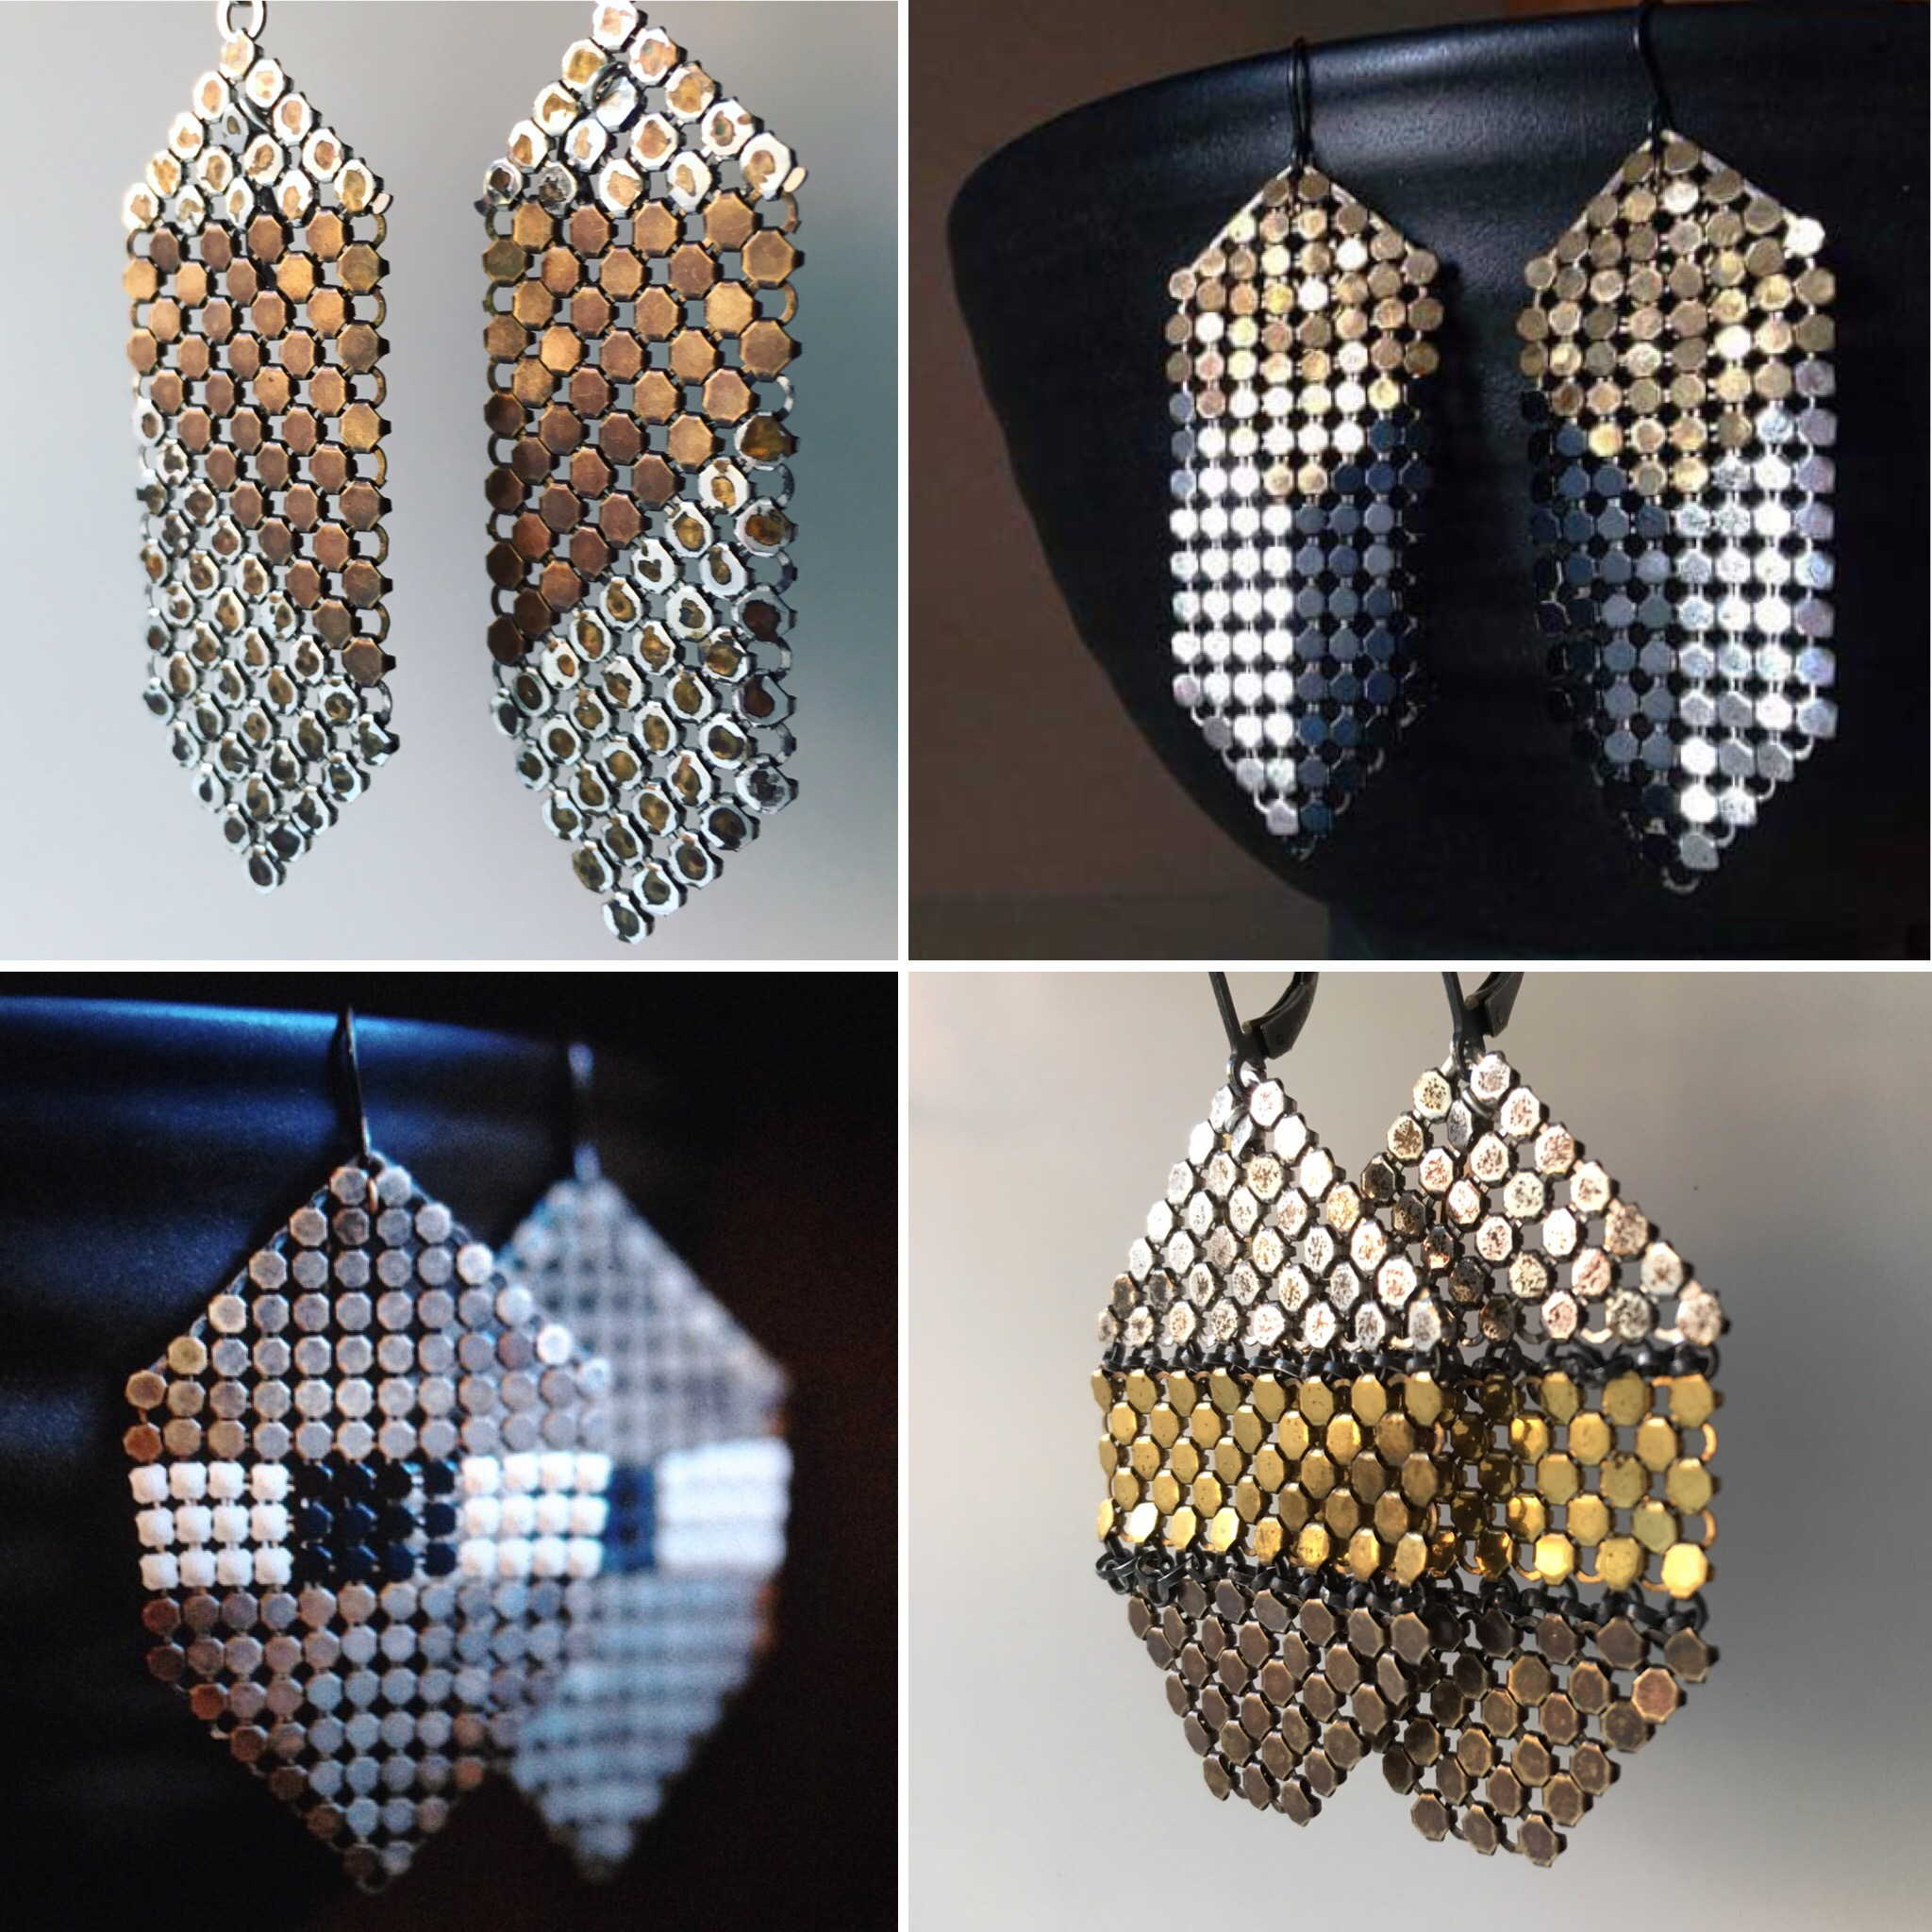 rustic-mesh-earrings-comp-maralrapp.JPG